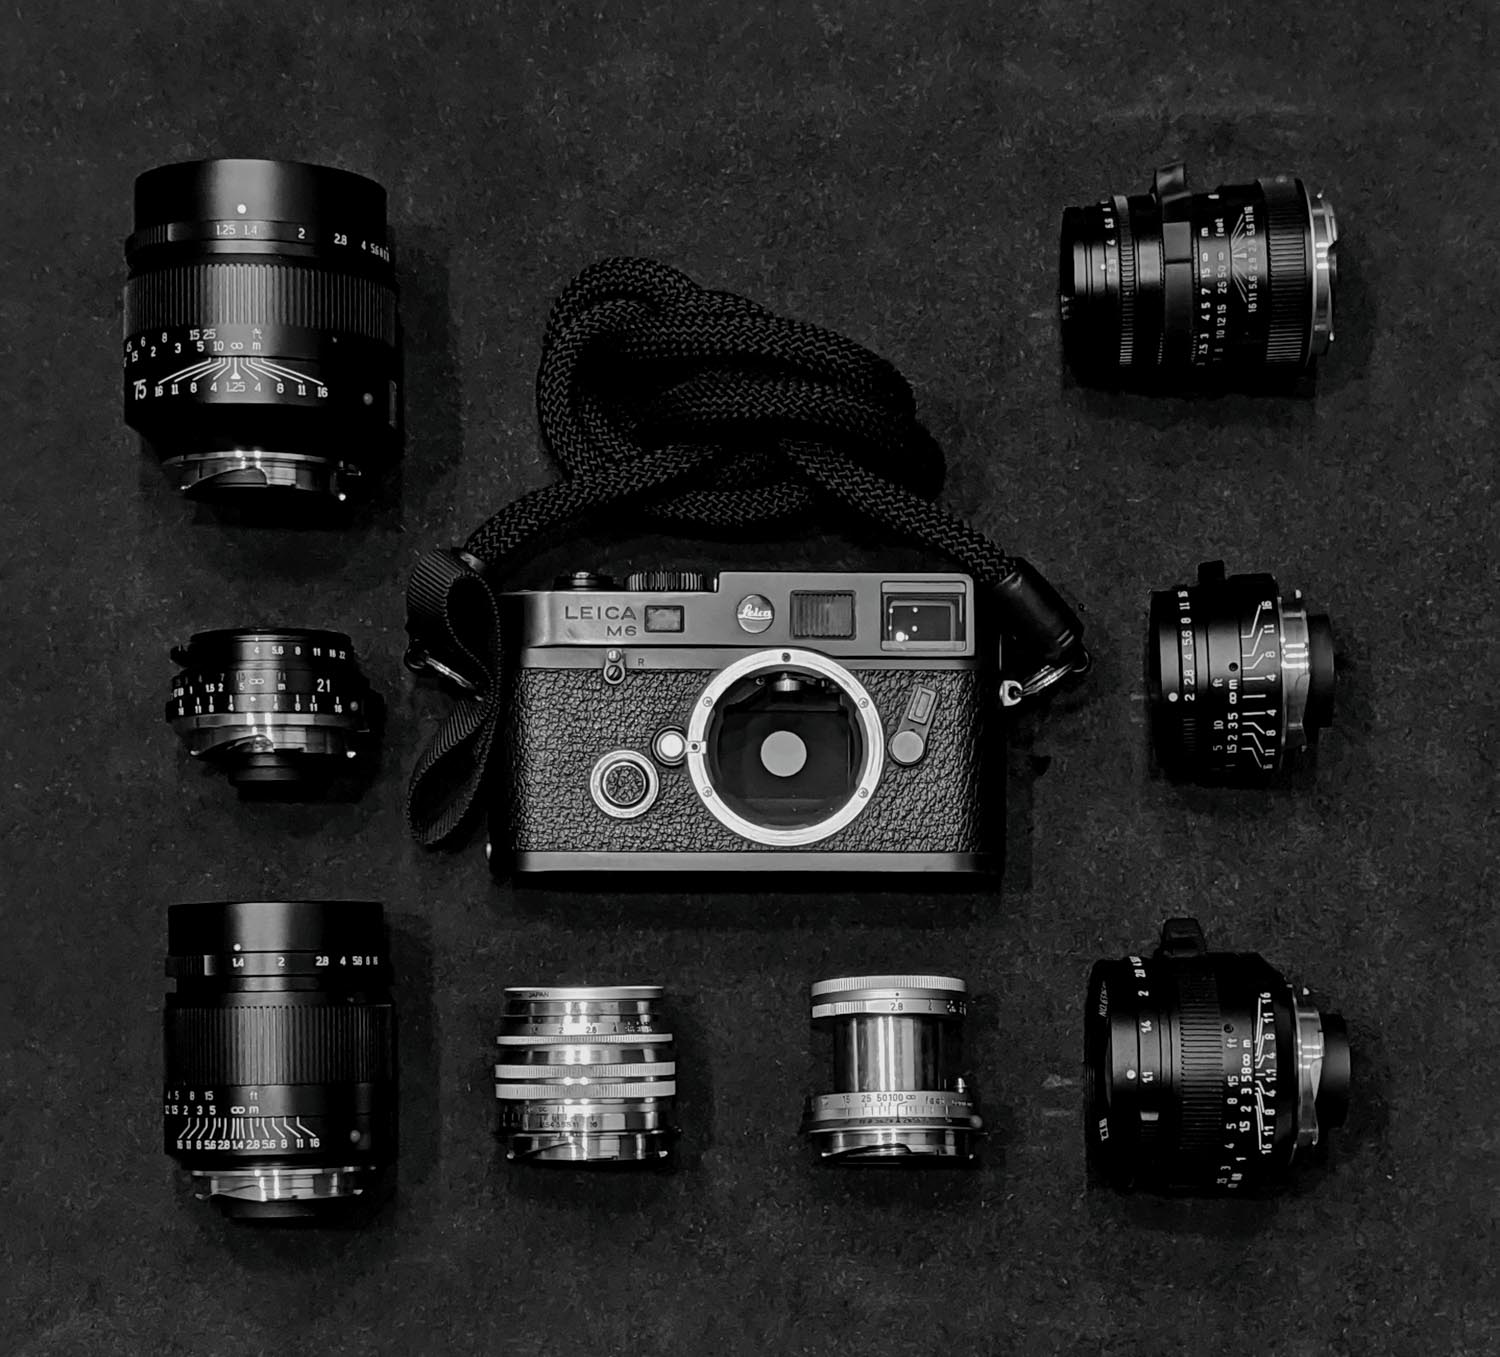 Leica M6 and lens collection